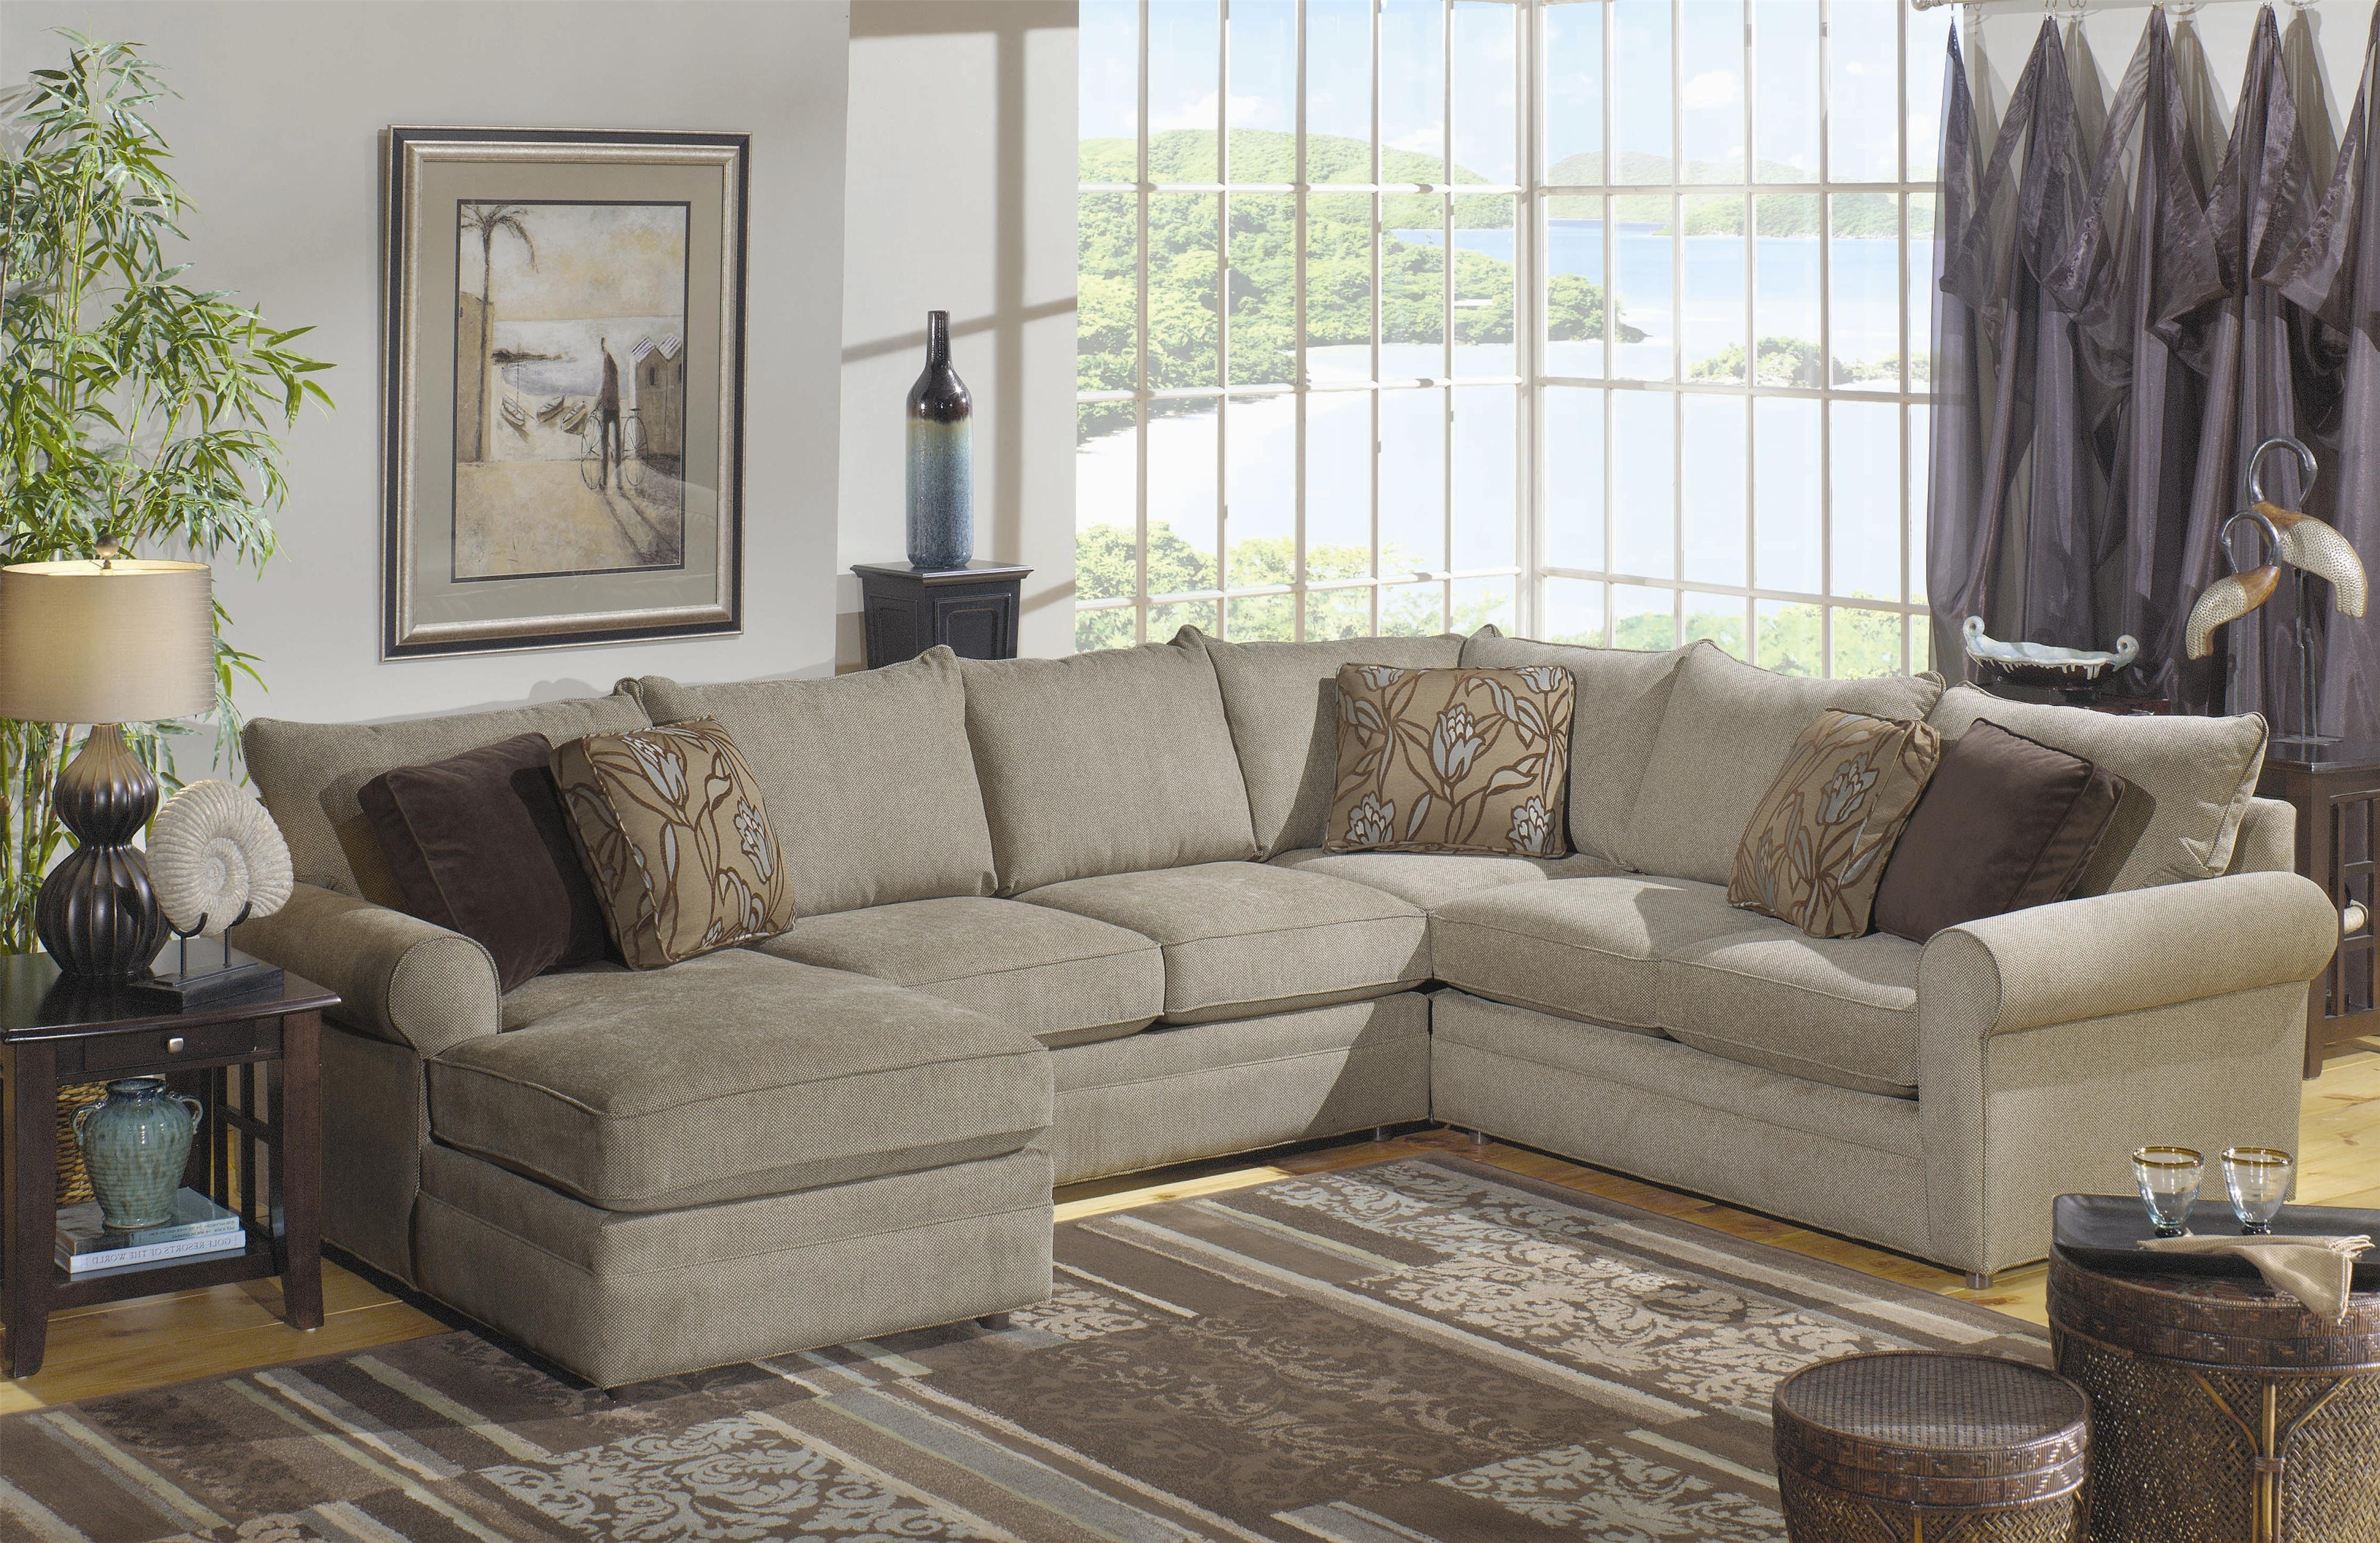 Sectional Sofa With Left Side Chaise | For The Home | Pinterest With Regard To Hickory Nc Sectional Sofas (Image 6 of 10)